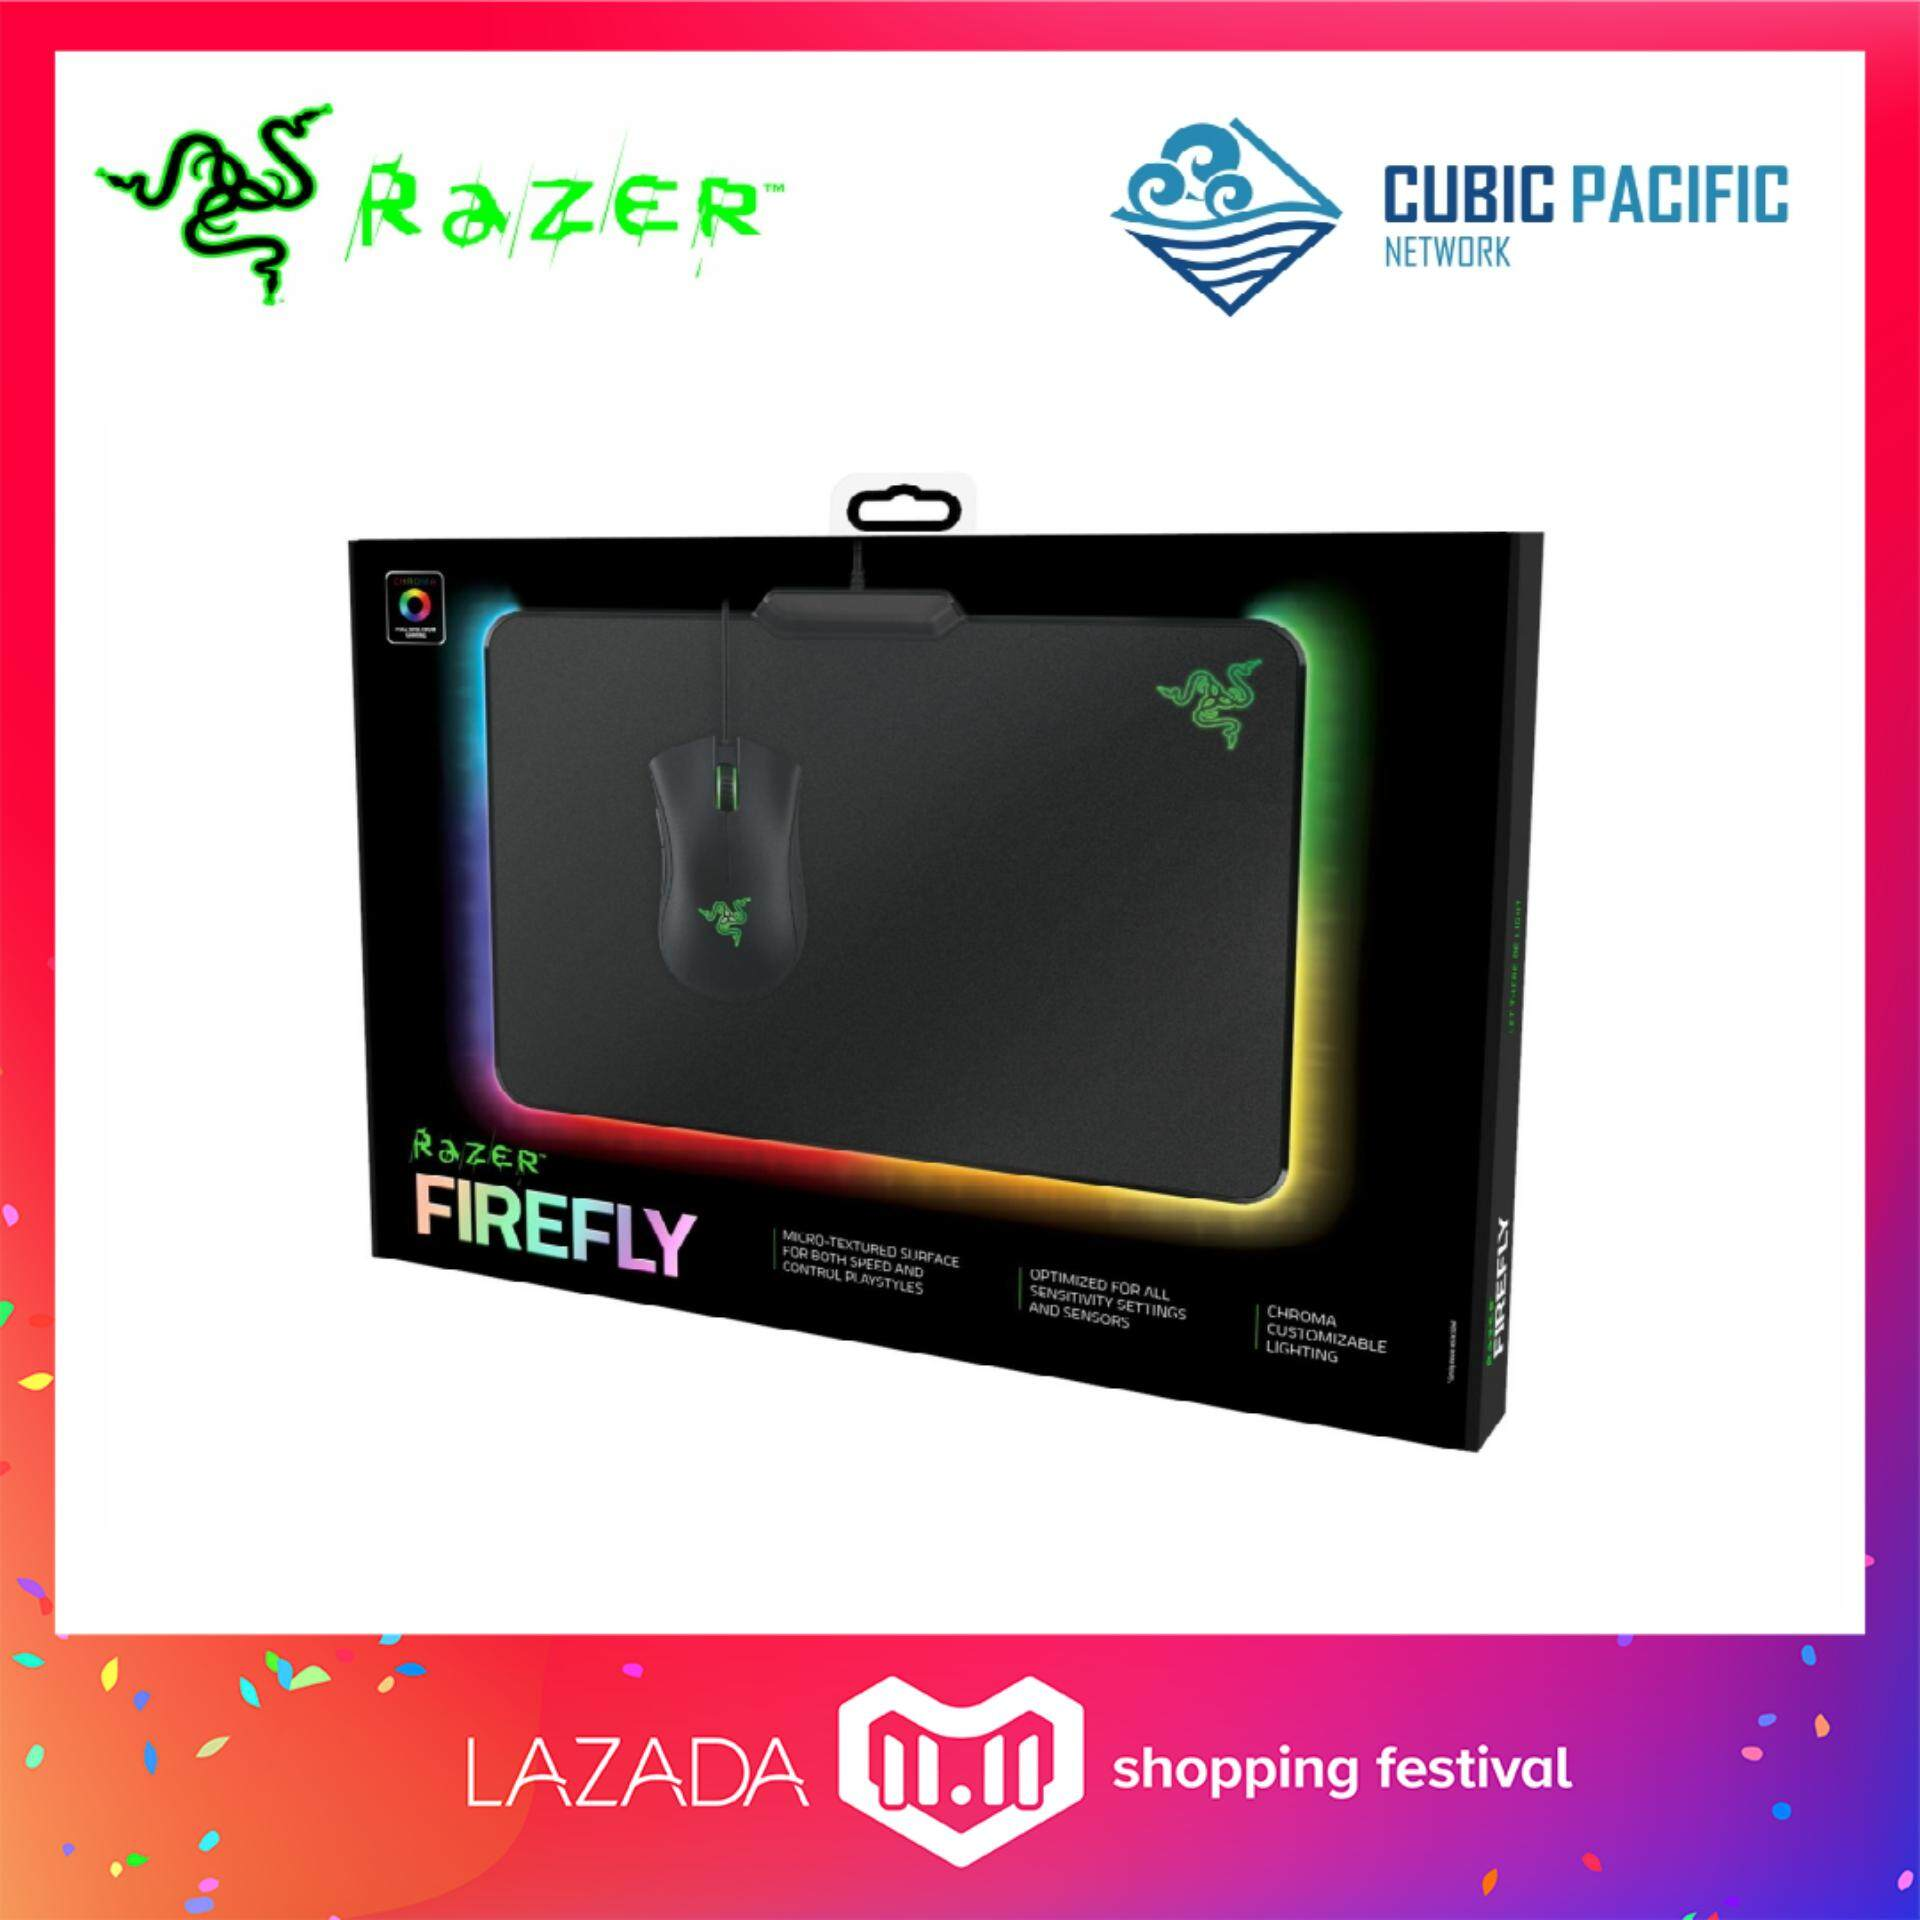 Razer Firefly - Hard Gaming Mouse Mat (Chroma lighting with 16.8 million color options) RZ02-01350100-R3M1 Malaysia